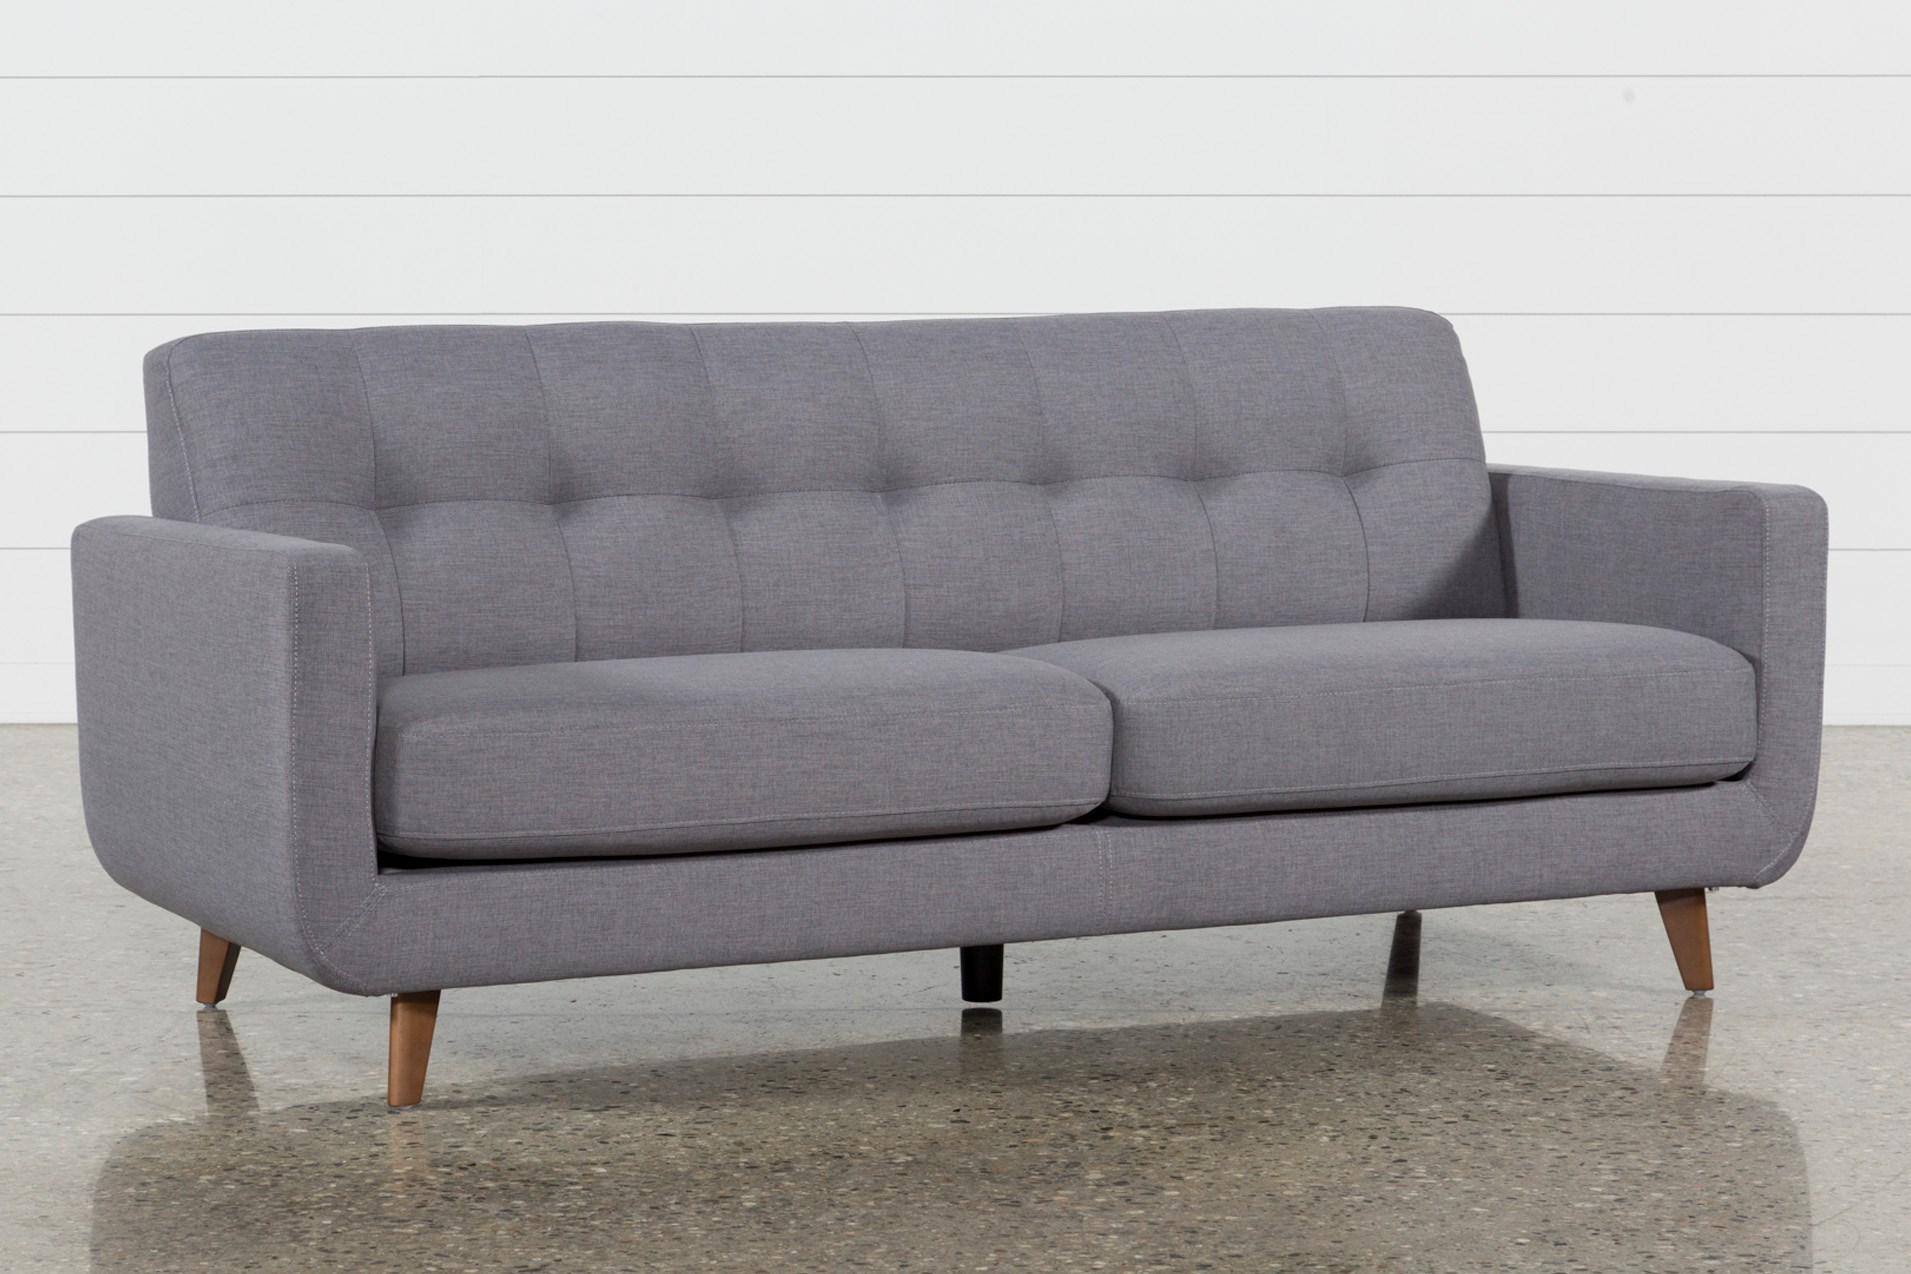 Allie Dark Grey Sofa Qty 1 Has Been Successfully Added To Your Cart